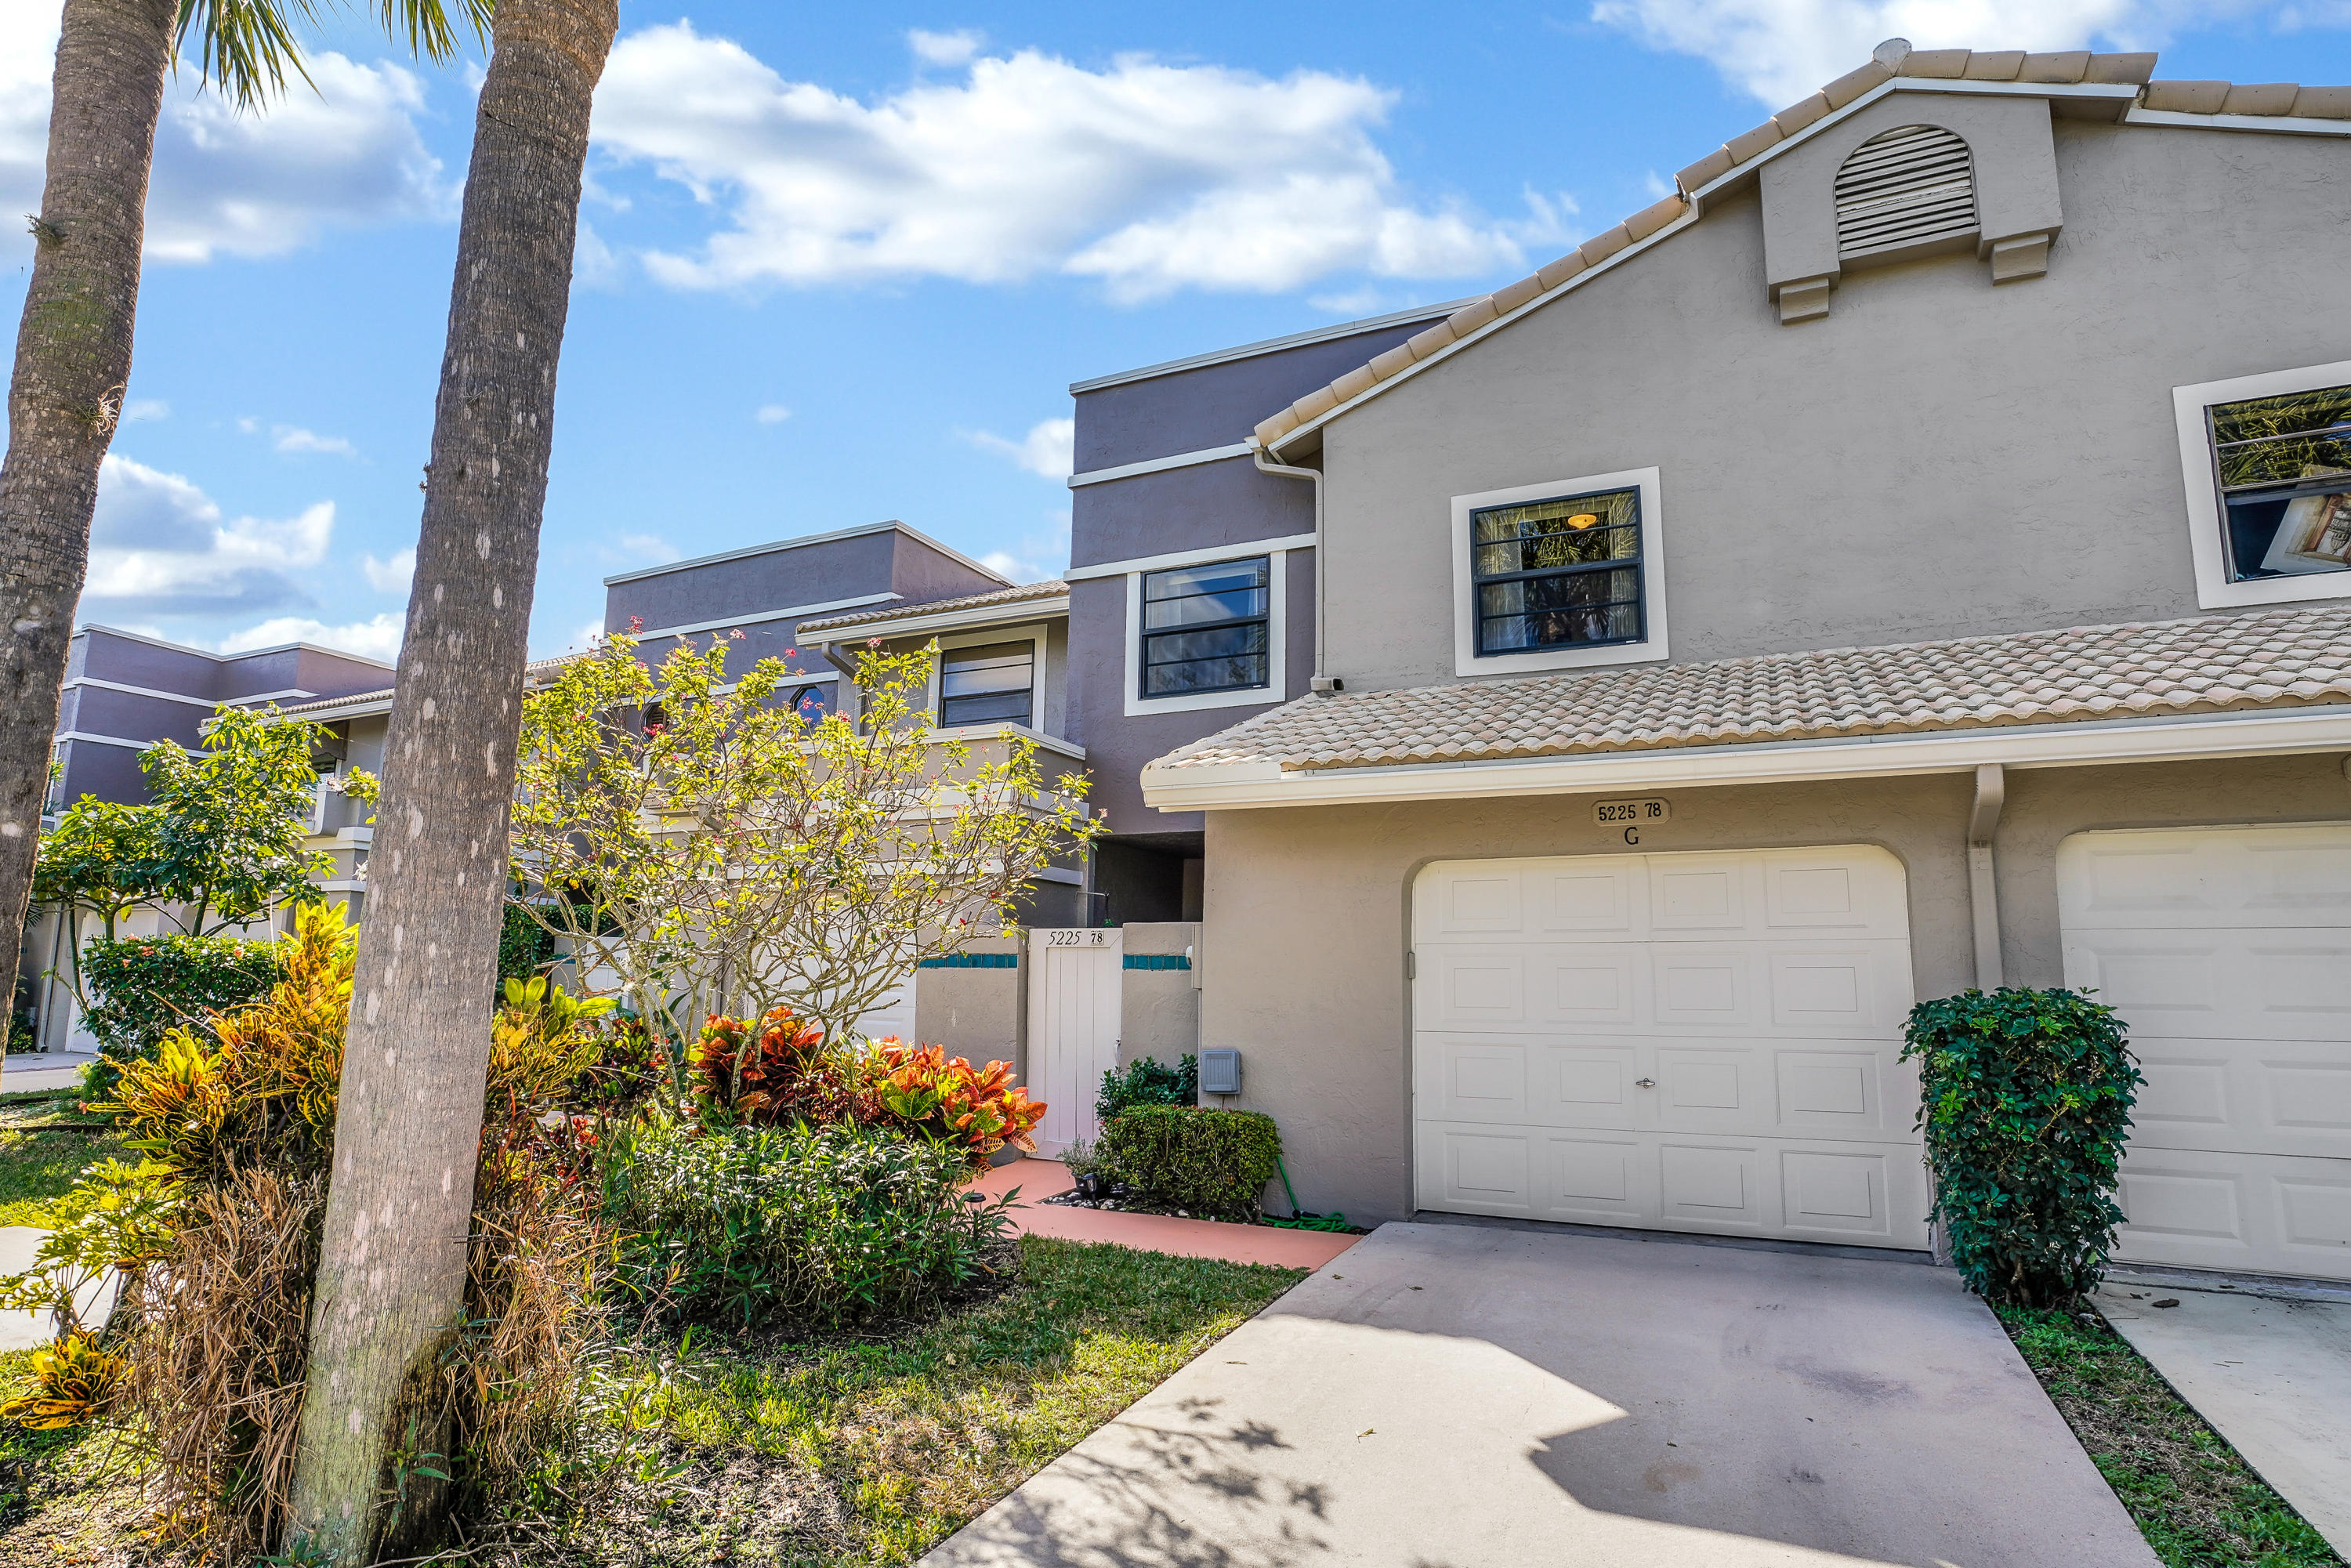 Home for sale in Monterey Lake Delray Beach Florida